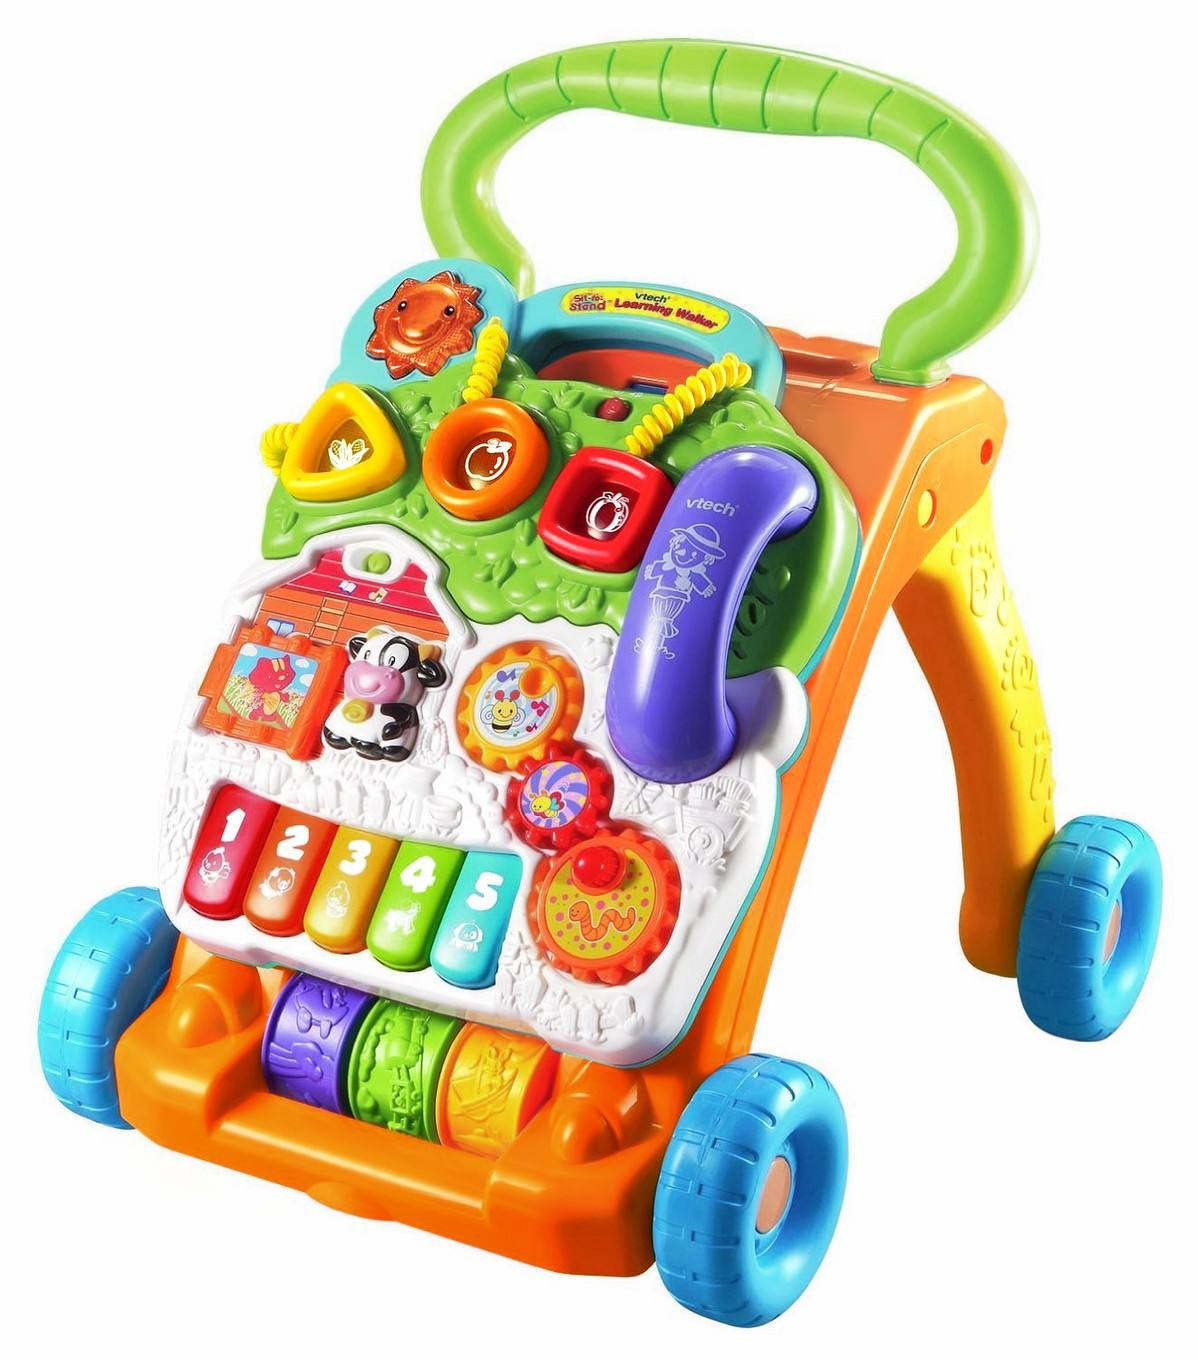 The 10 Best Toys to Buy for One-Year-Olds in 2018